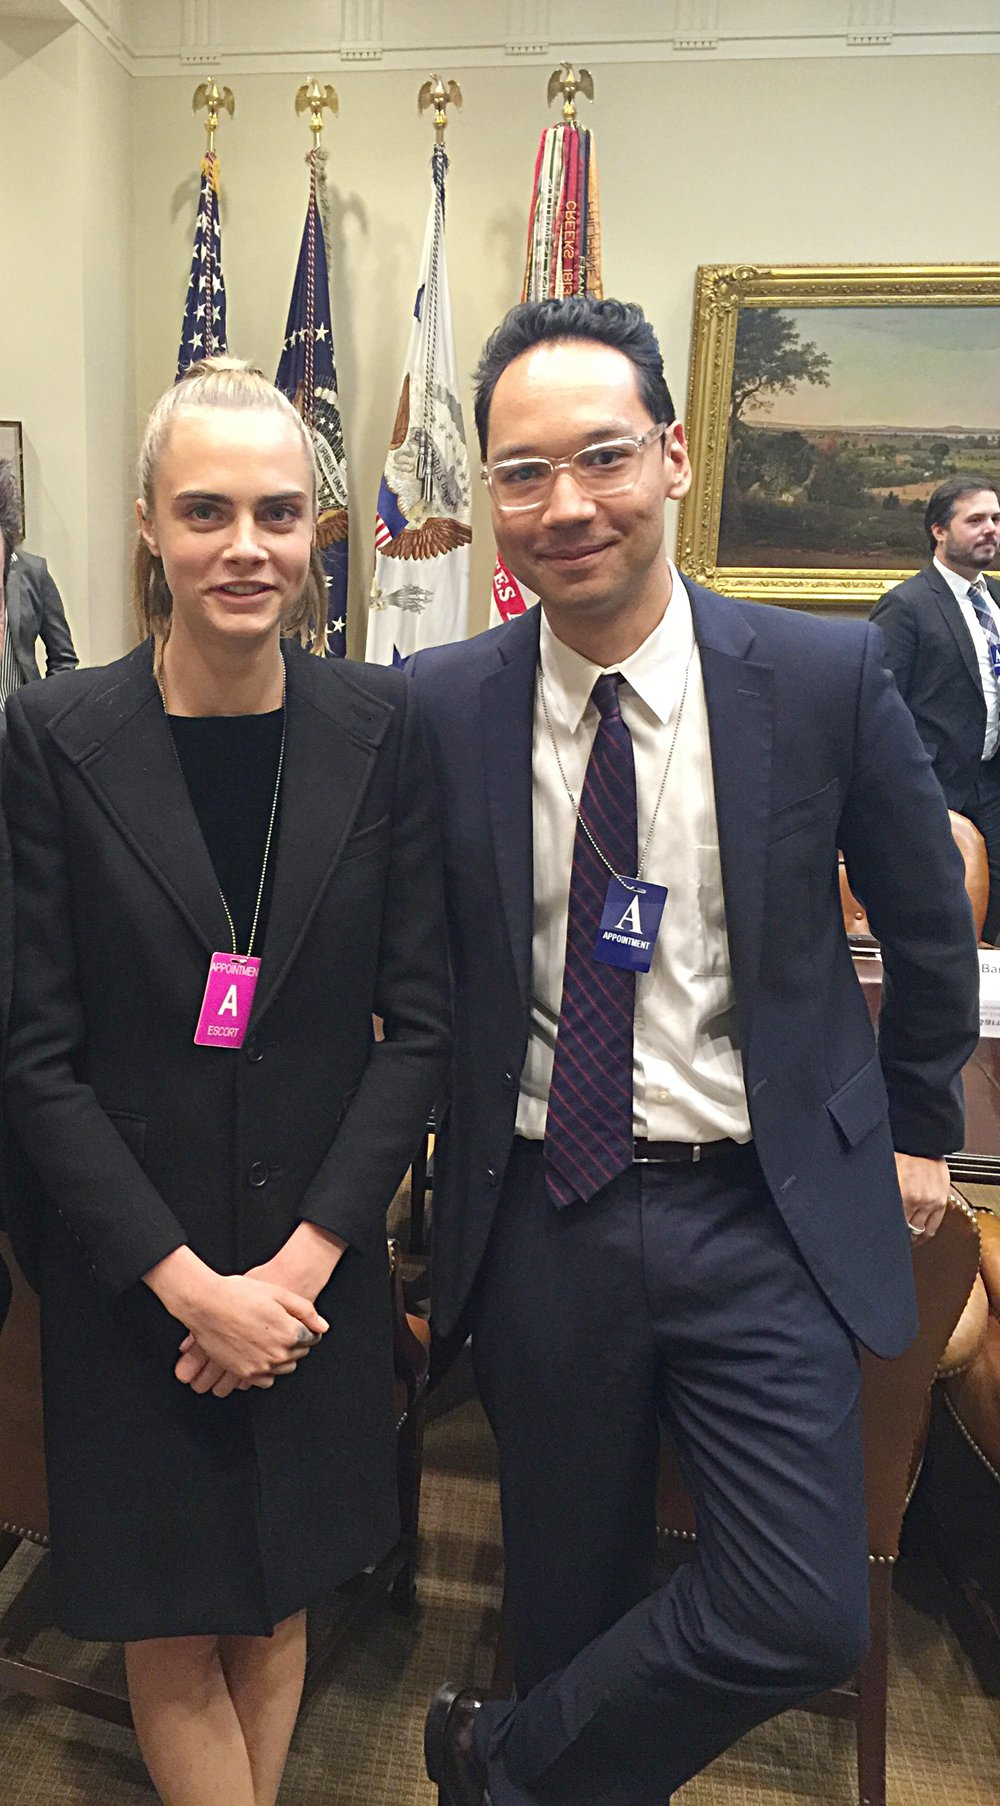 Cara Delevingne attends climate change roundtable at The White House